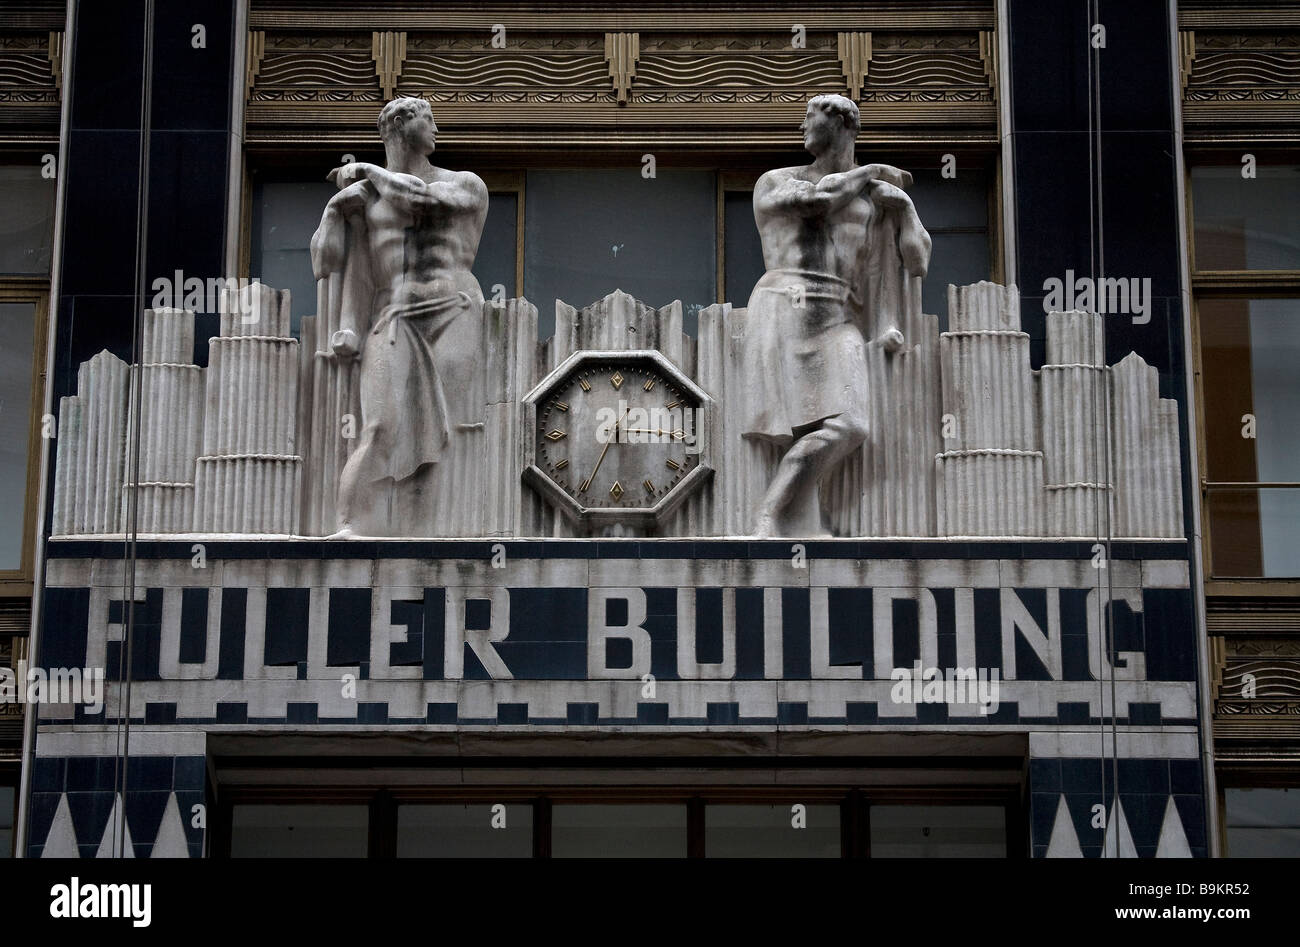 united states, new york city, manhattan, fuller building with art